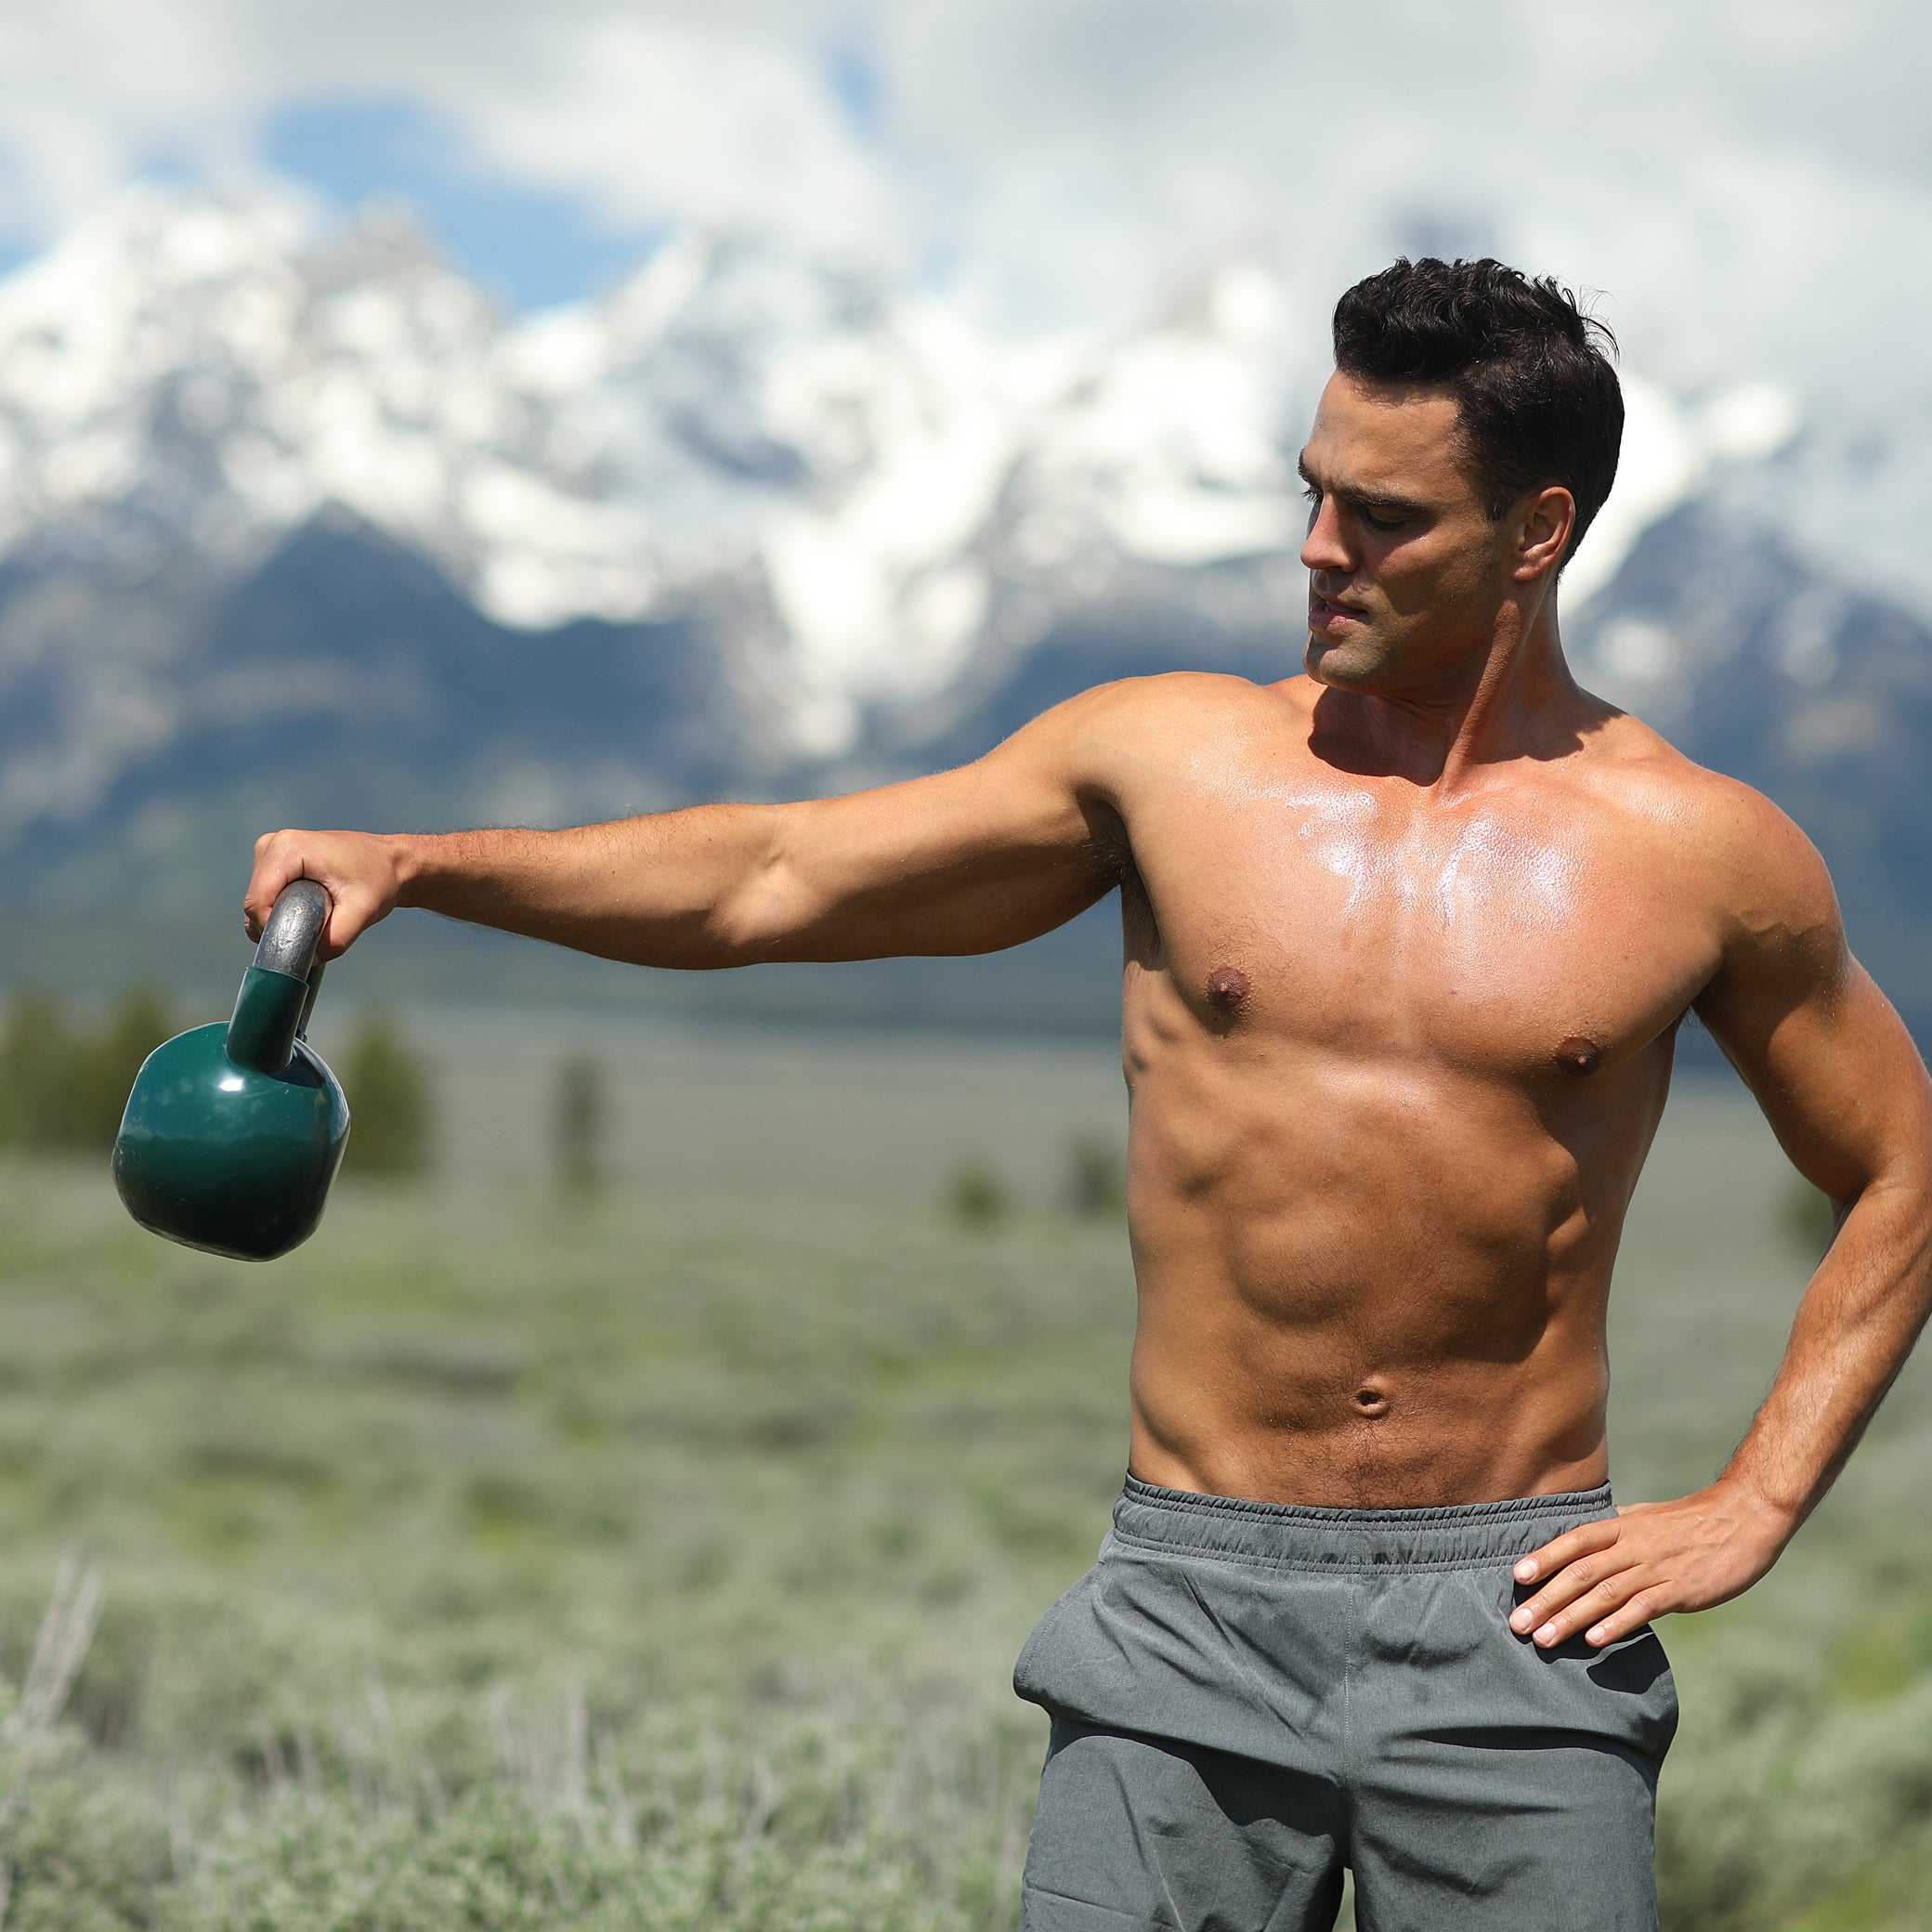 Matthew Konsmo using a kettle ball to do shoulder raises in the mountains